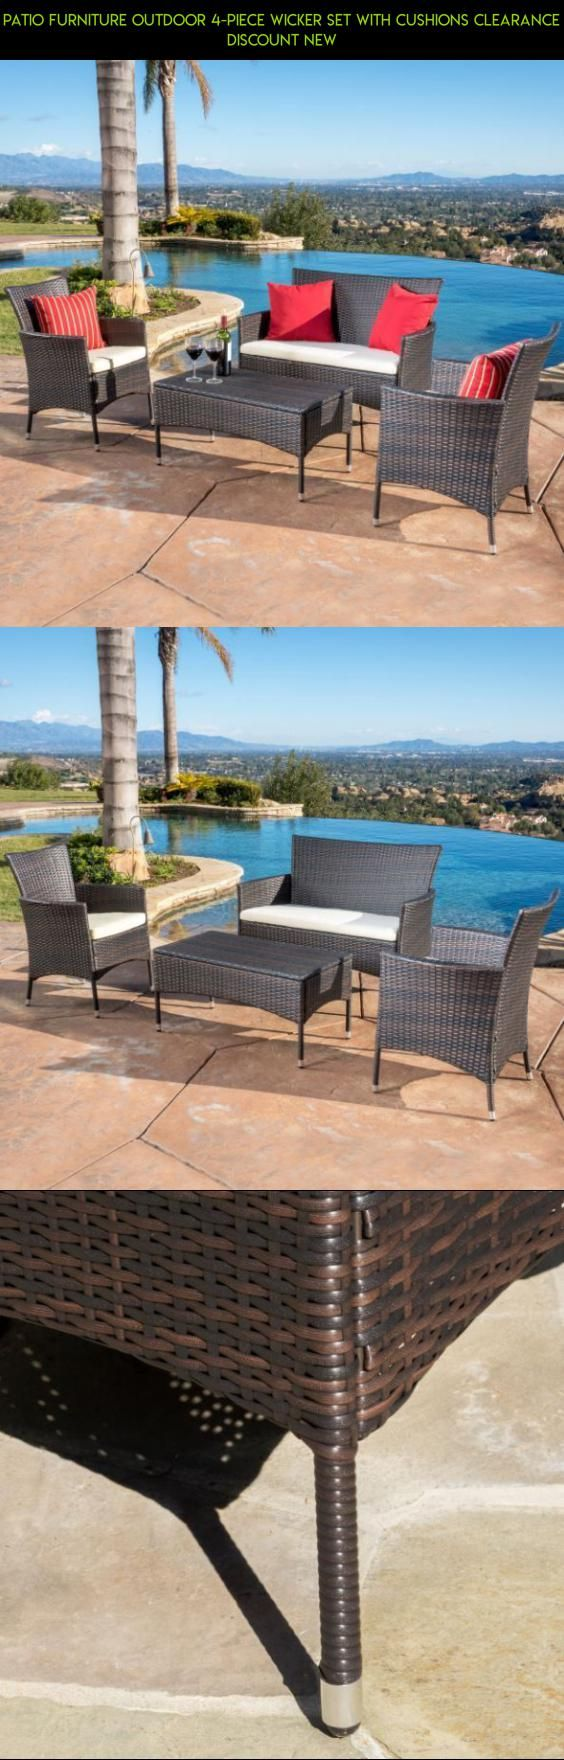 Patio Furniture Outdoor 4-piece Wicker Set with Cushions Clearance Discount New #camera #products #sets #drone #4 #patio #gadgets #fpv #furniture #kit #shopping #racing #plans #tech #technology #parts #clearance